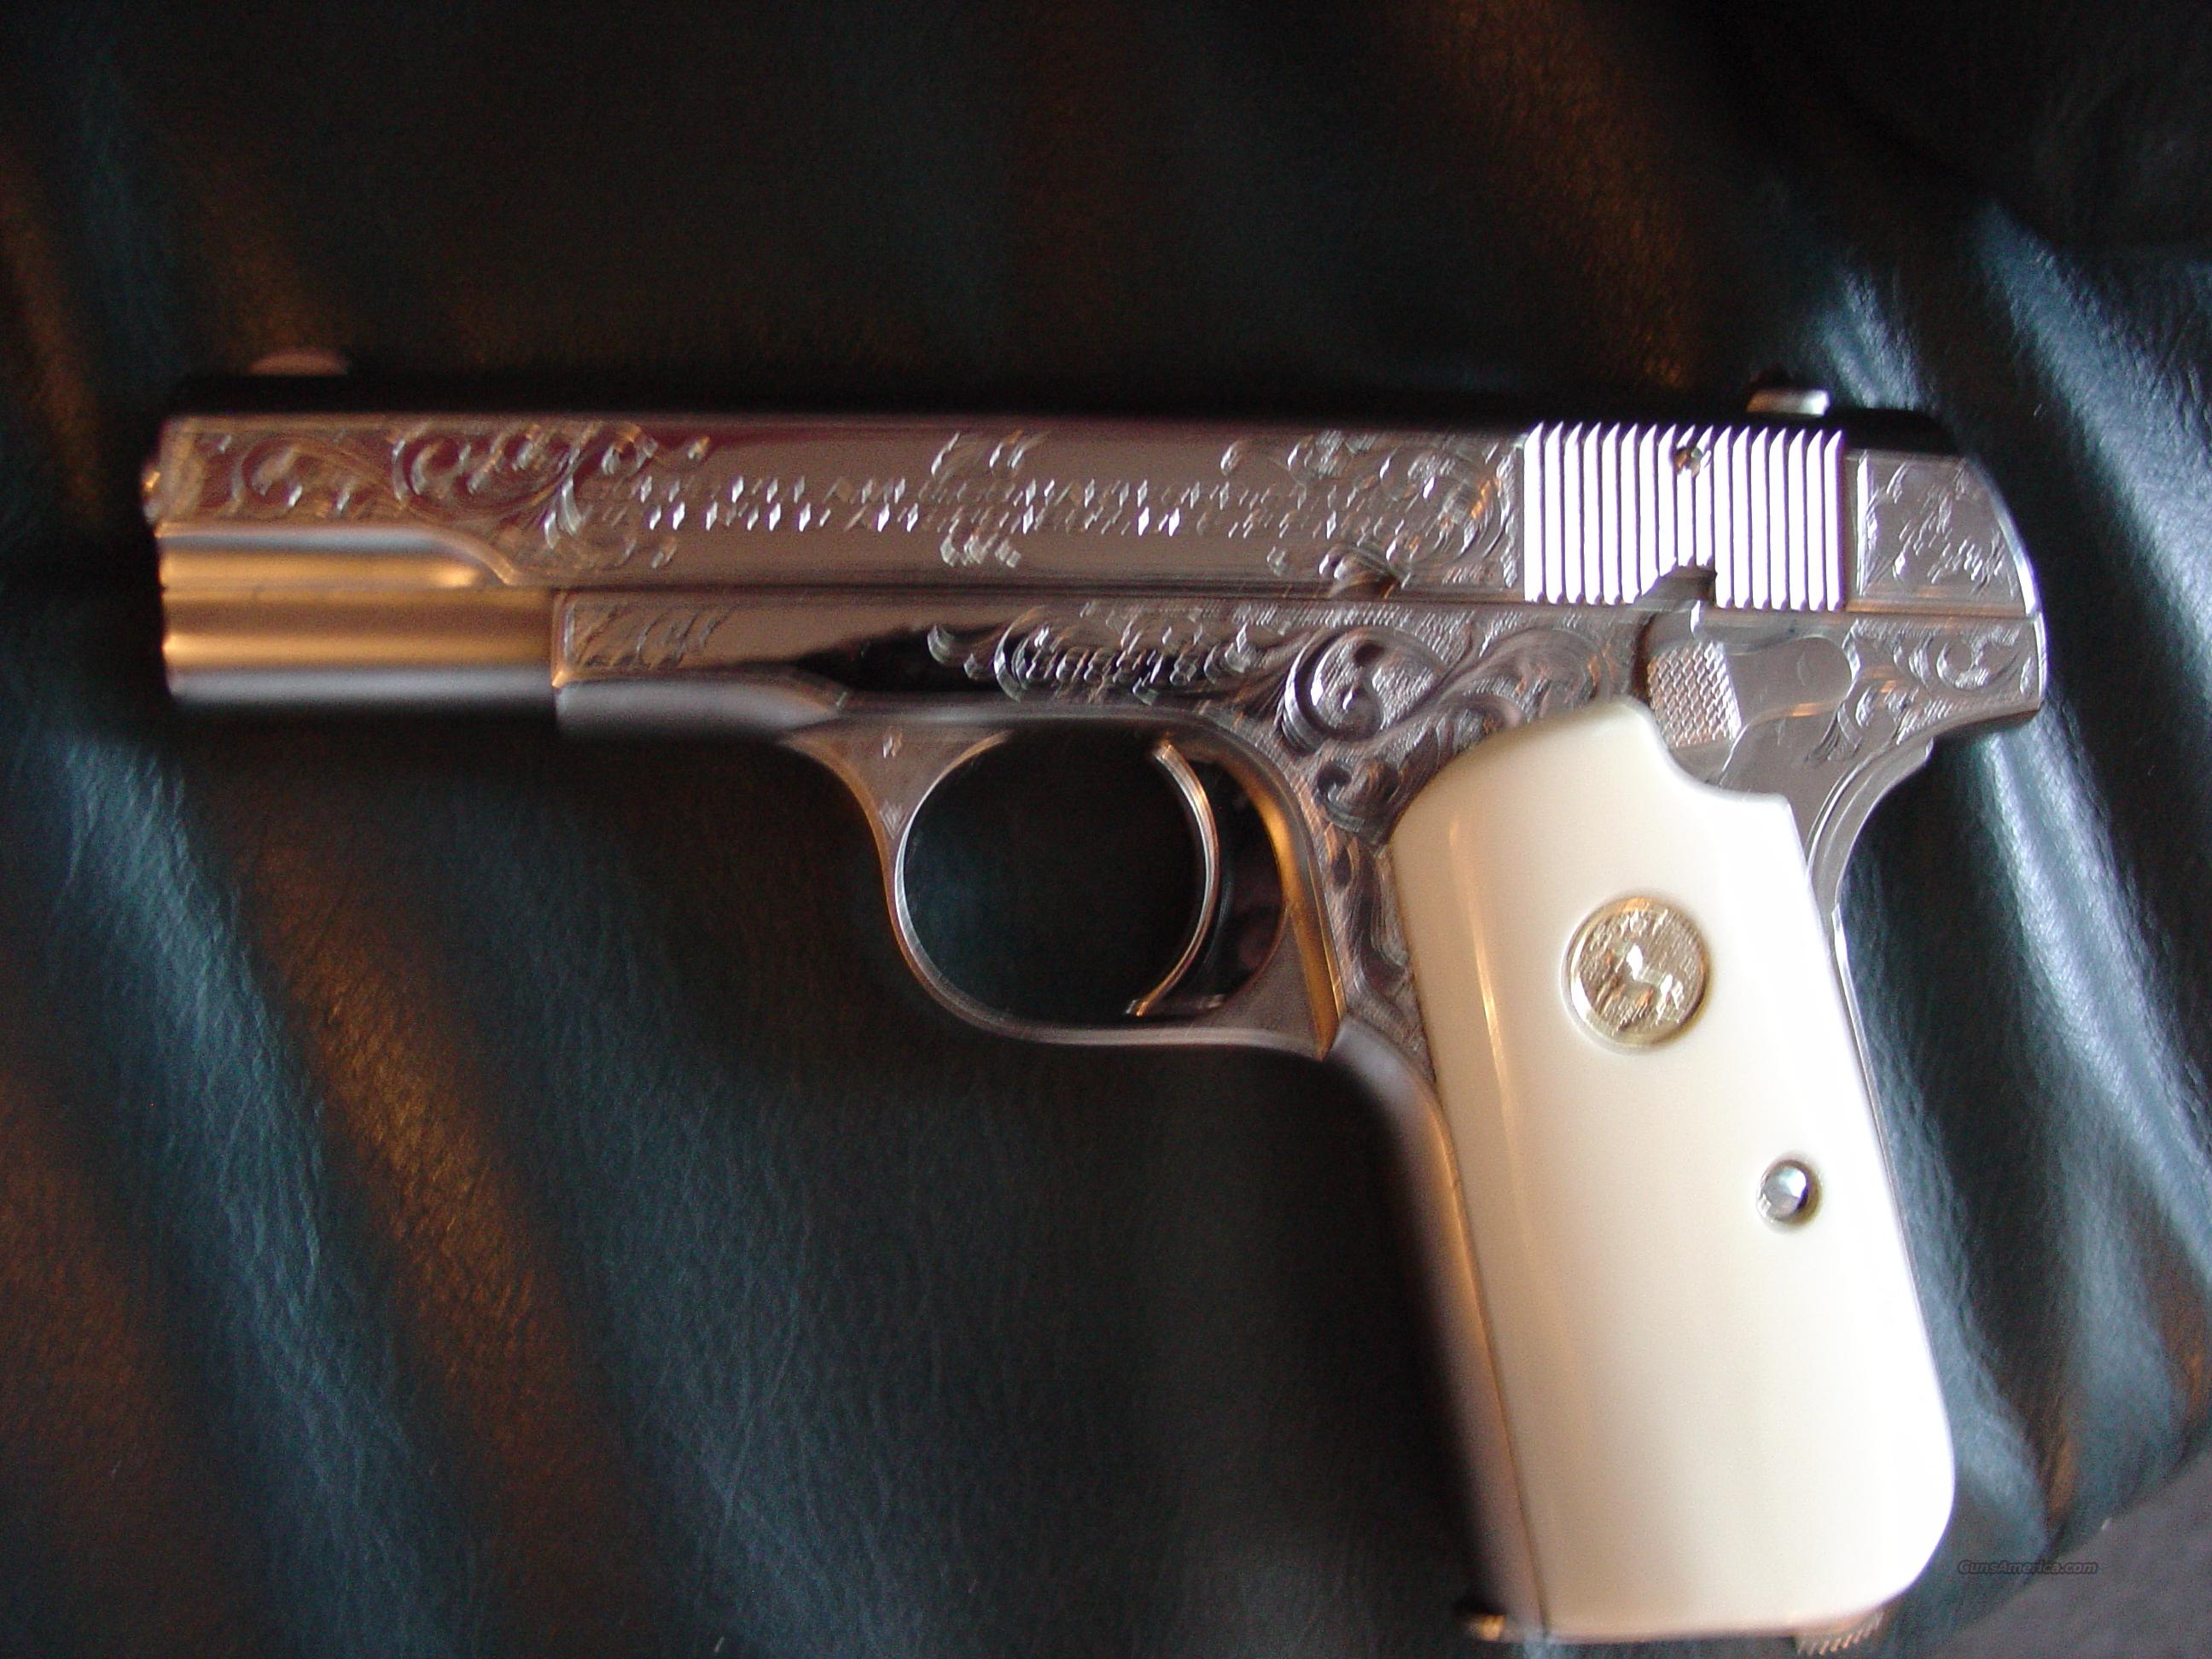 Colt 1903 Hammerless,made in 1920,refinished in bright nickel,Master Scroll engraved with certificate,bonded ivory grips,32 cal-way nicer in person !!  Guns > Pistols > Colt Automatic Pistols (.25, .32, & .380 cal)